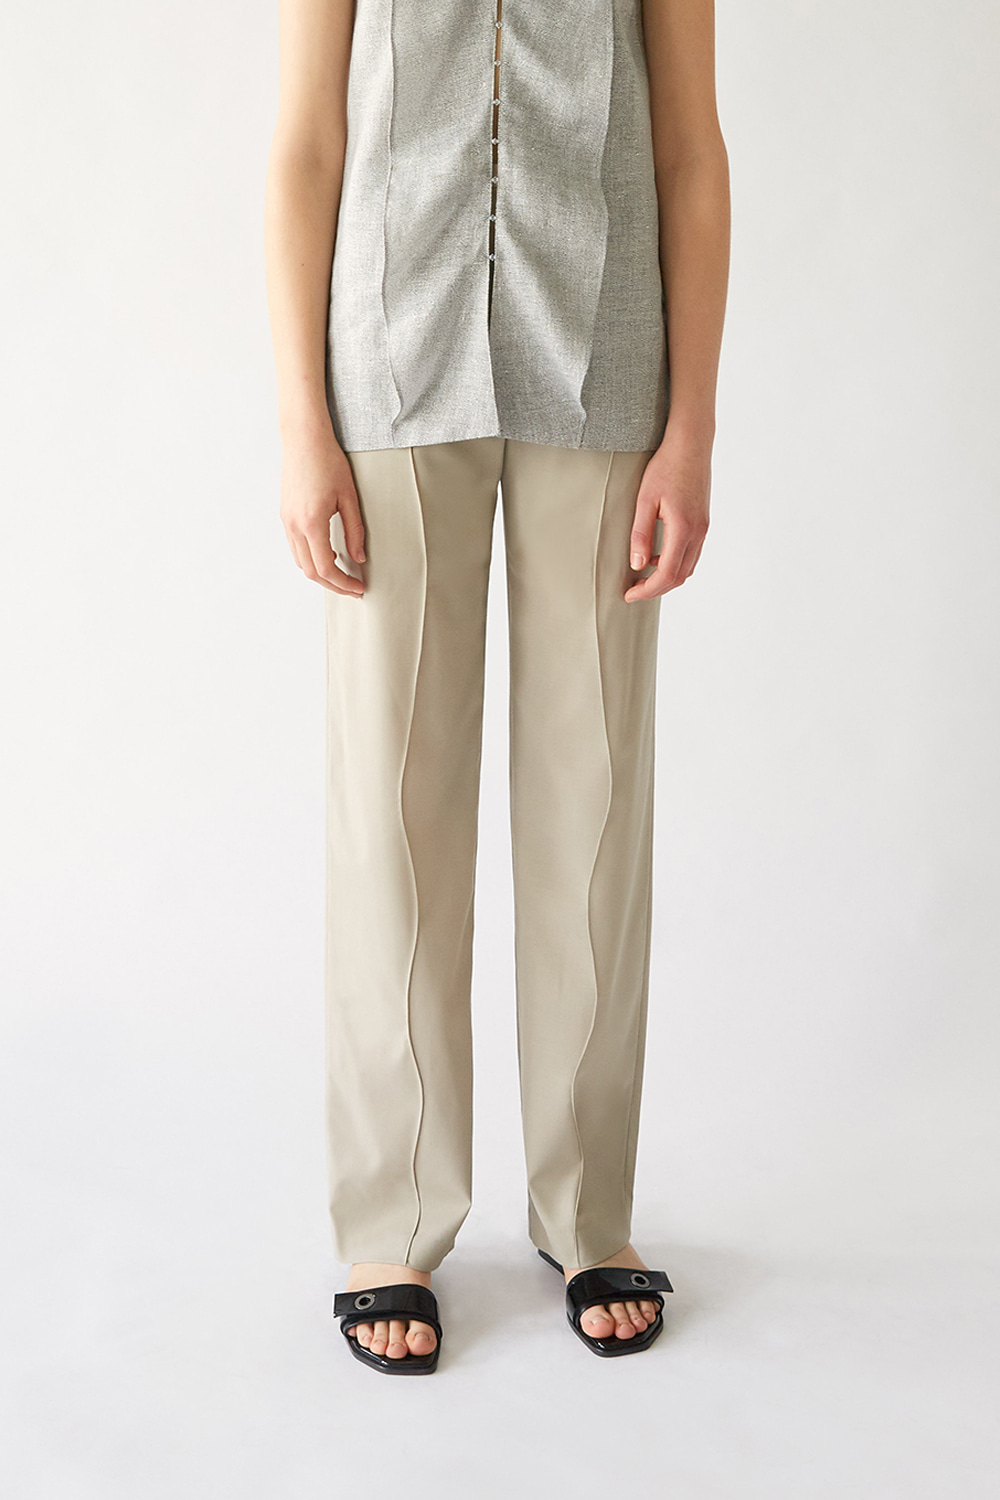 [주문제작] SS19 WAVY PIN-TUCK WOOL TROUSERS